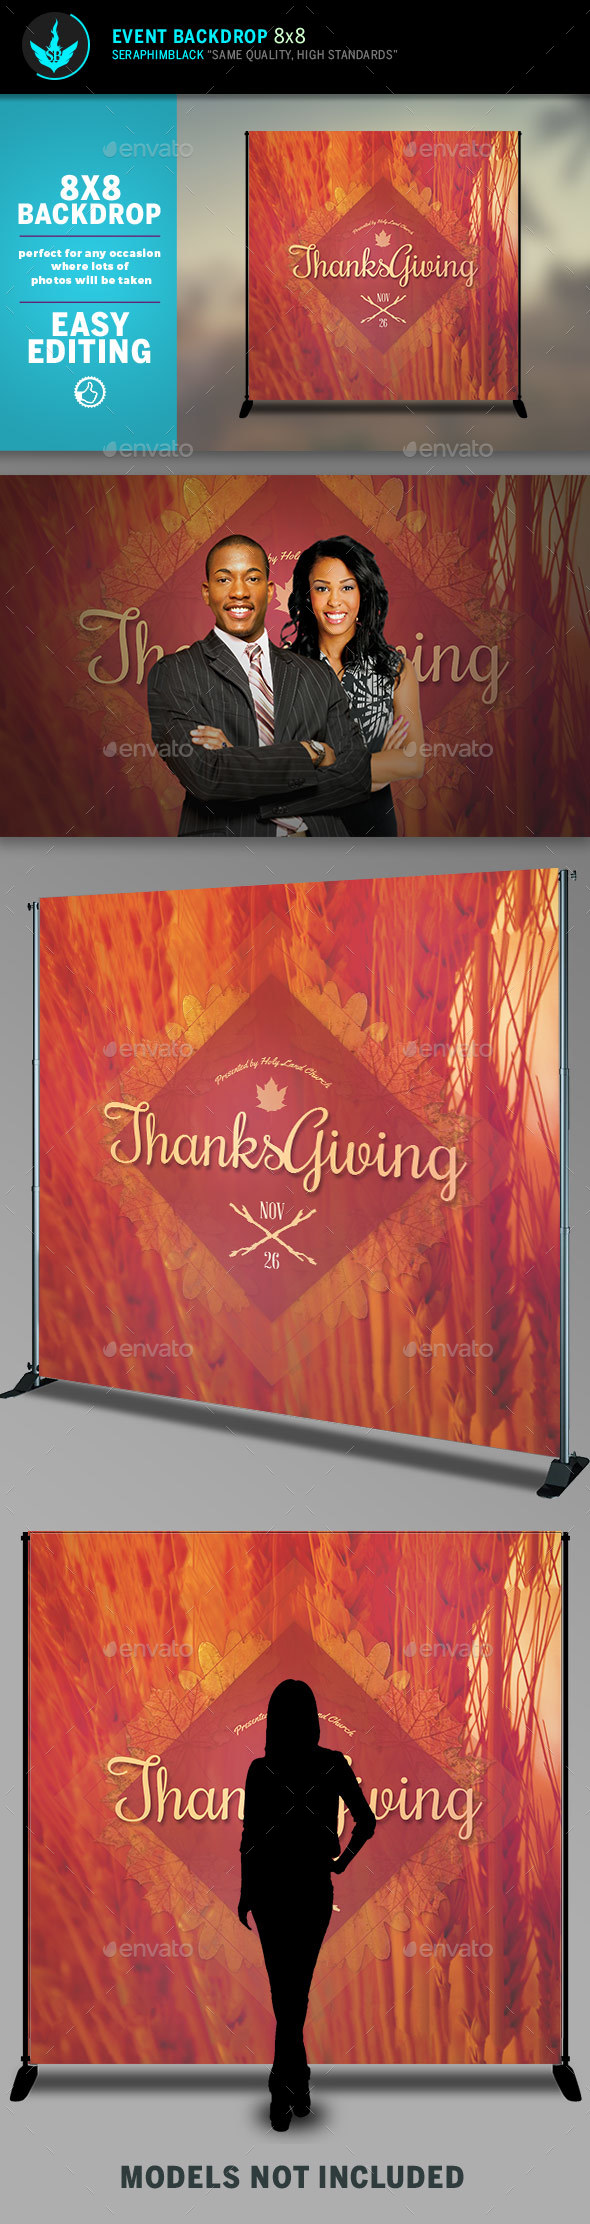 GraphicRiver Thanksgiving 8x8 Event Backdrop Template 20615890